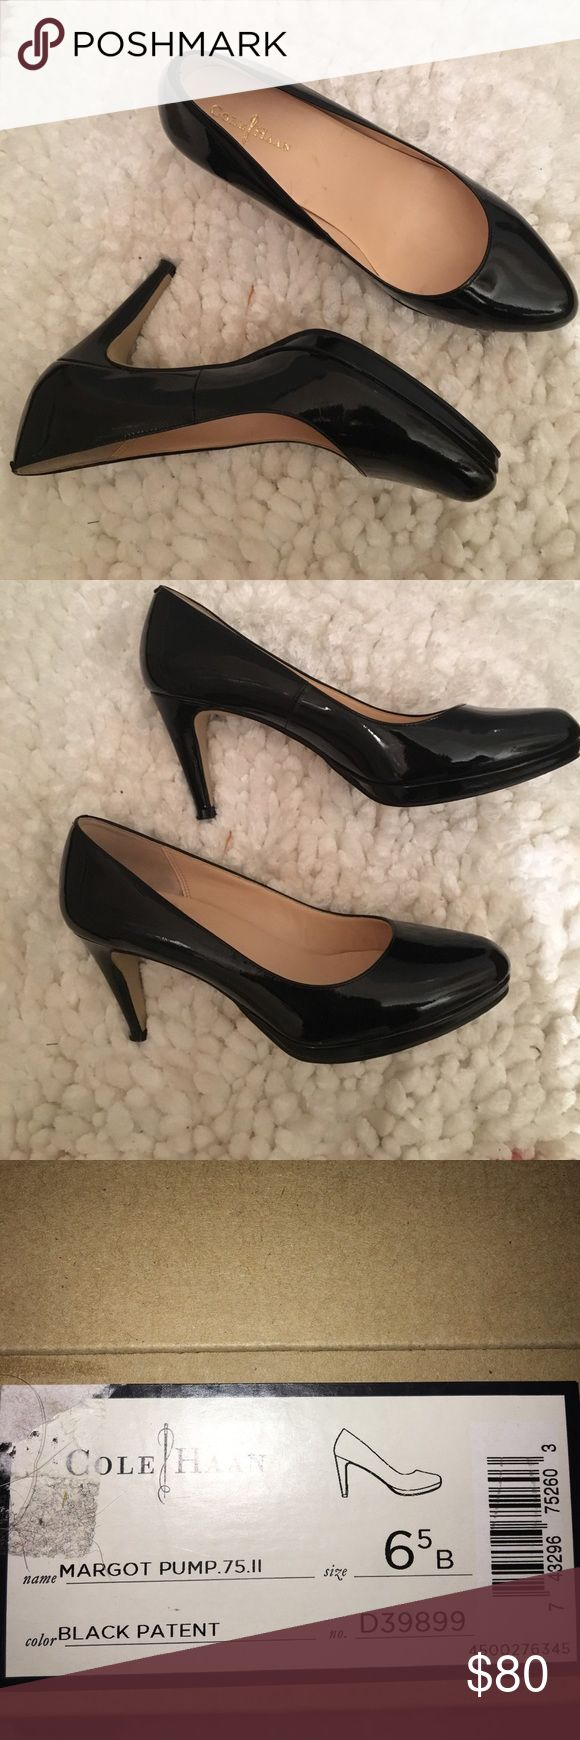 Like new Cole HAAN patented leather pumps Like new. Worn once for a special event. Comes in box. No scuffs or marks. Cole Haan Shoes Heels